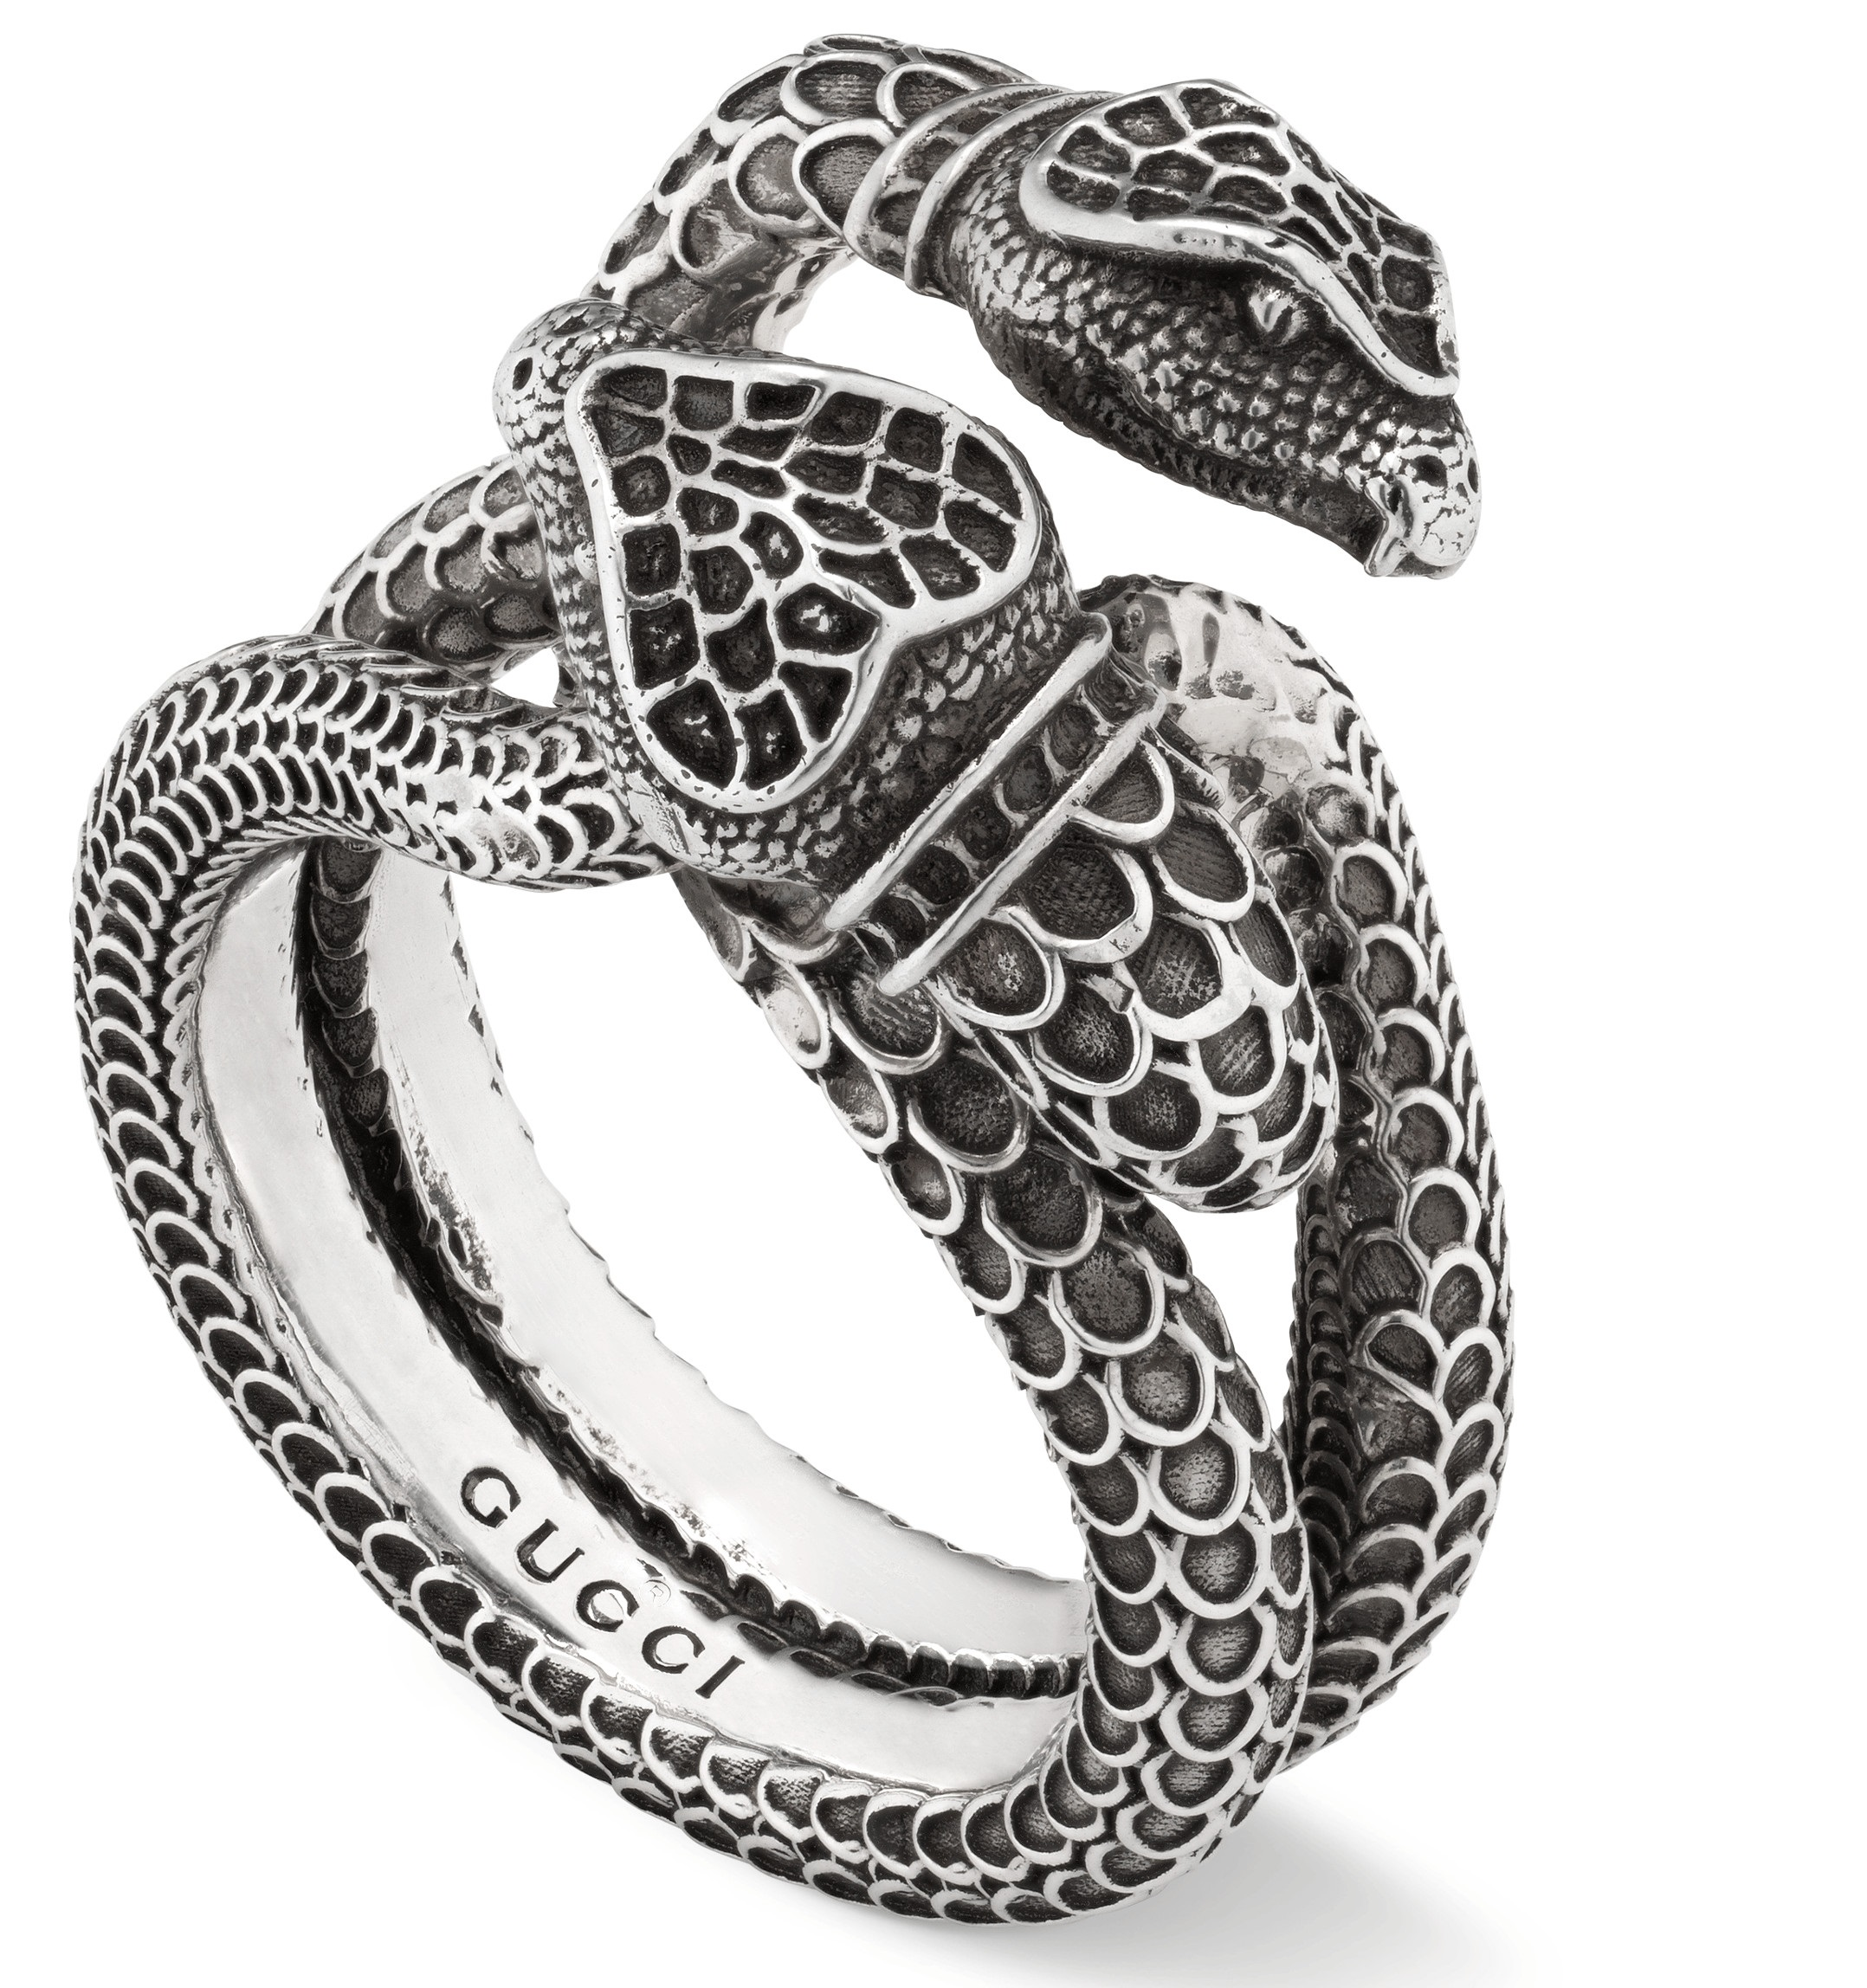 98192cf10 Gucci Garden Snakes Ring YBC525174001 - YBC525174001 - Beards